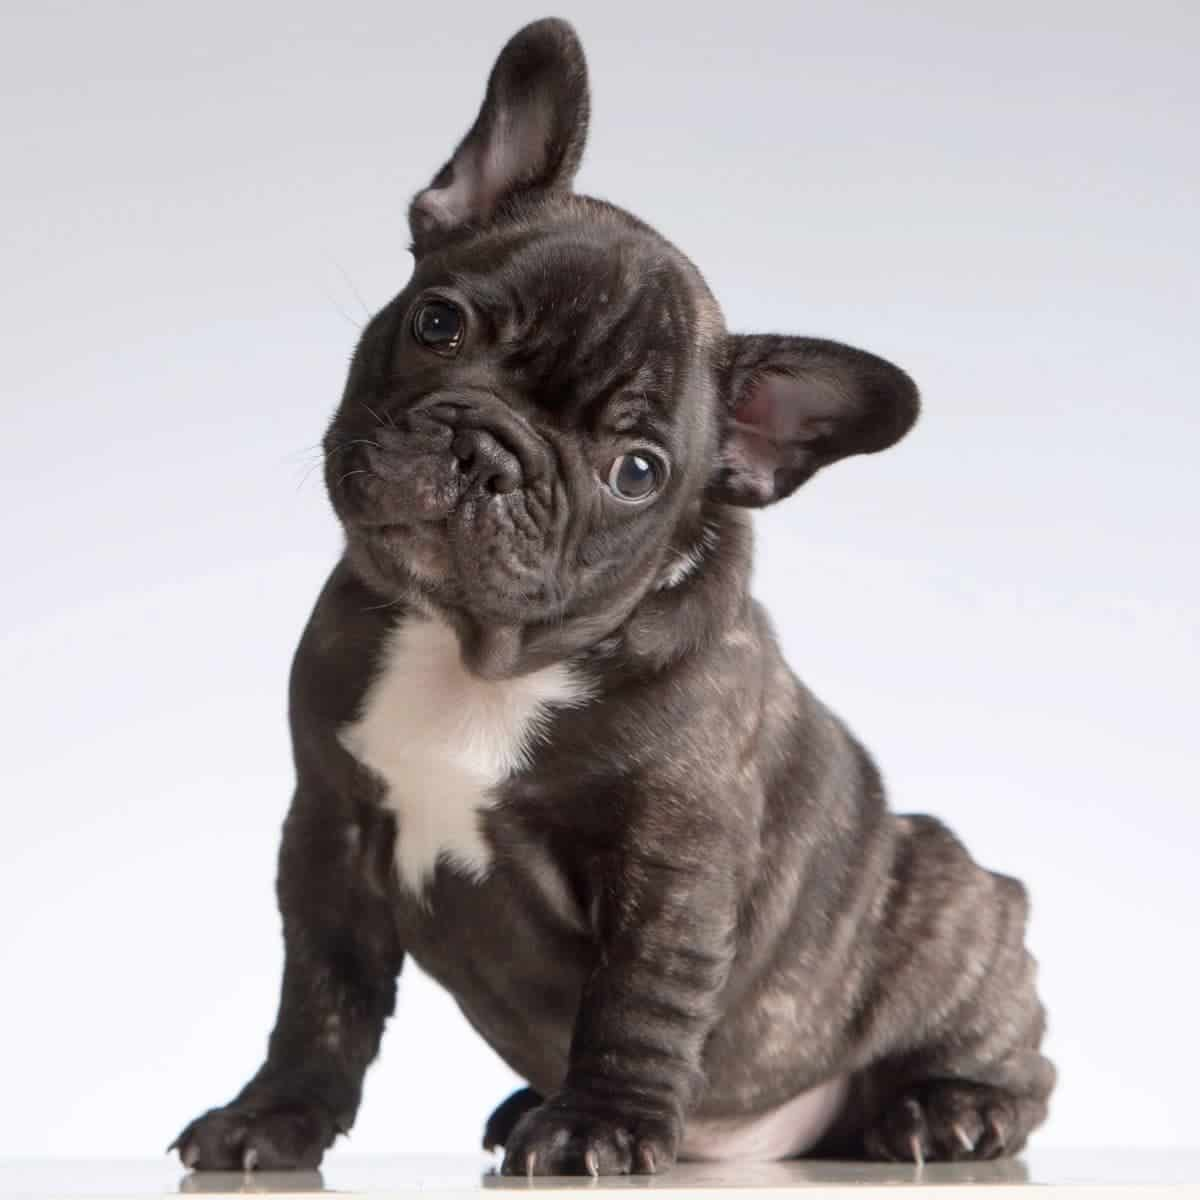 French Bulldog sitting and tilting its head.